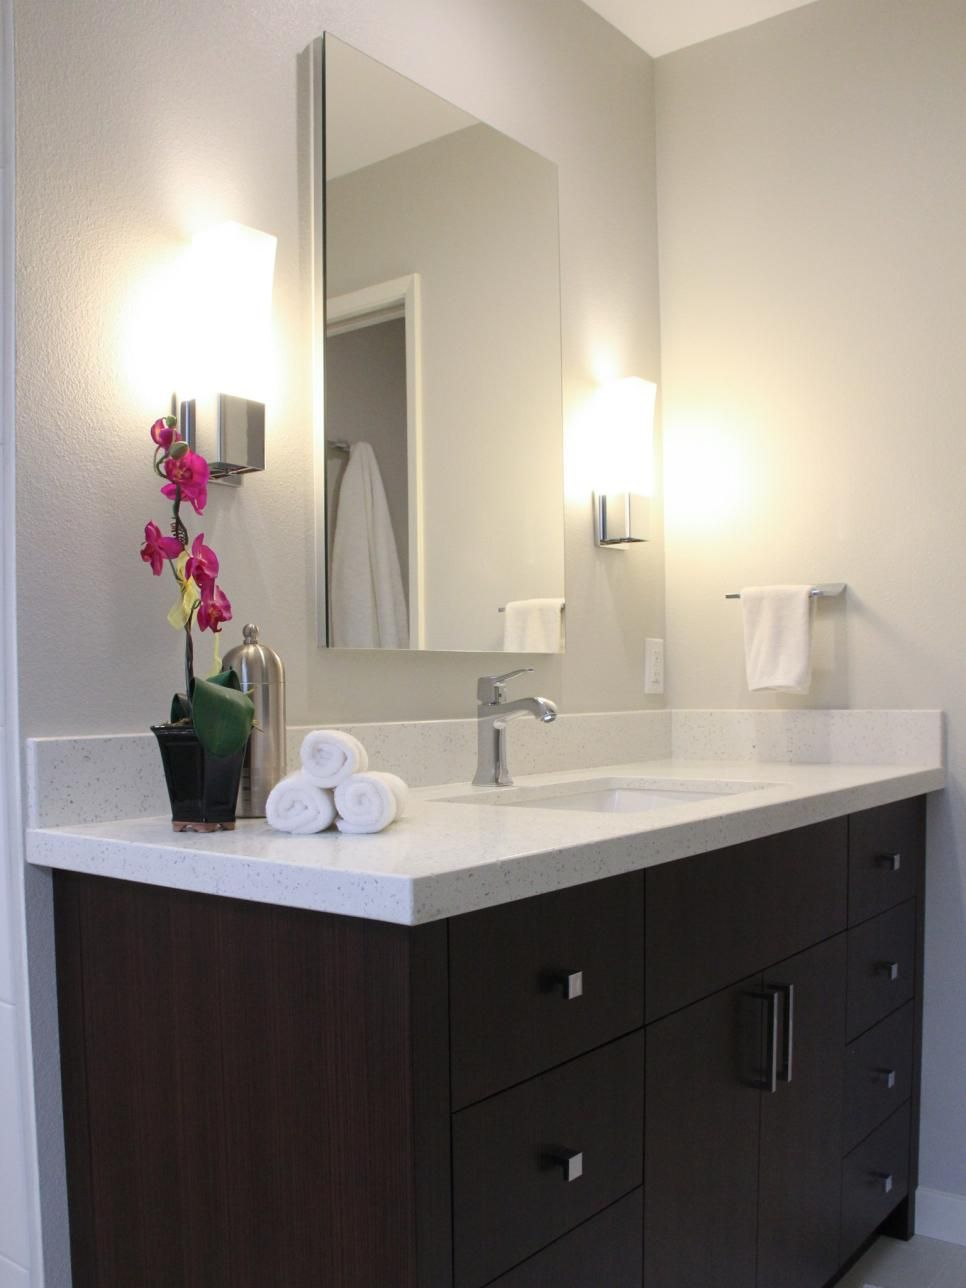 Pin By Donald Munkacy On Bathroom Contemporary Bathroom Vanity Bathroom Design Asian Bathroom